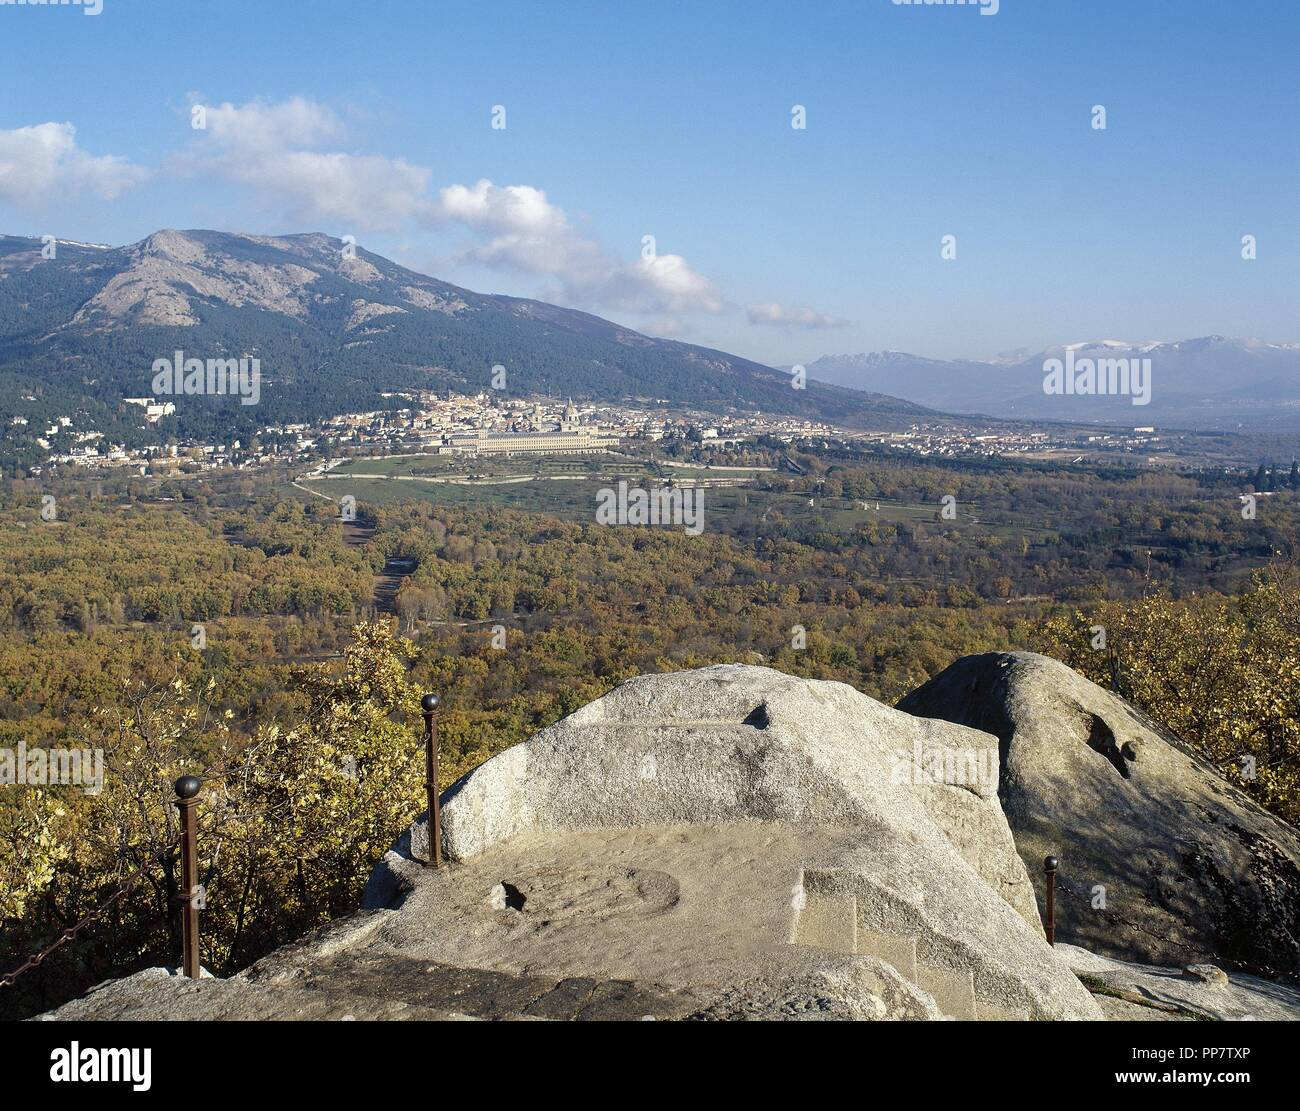 Spain. Community of Madrid. Panorama of San Lorenzo de El Escorial and the Monastery of El Escorial from the Chair of Philiph II, digging in granite rock where the monarch followed the progress of work of the monastery. Stock Photo